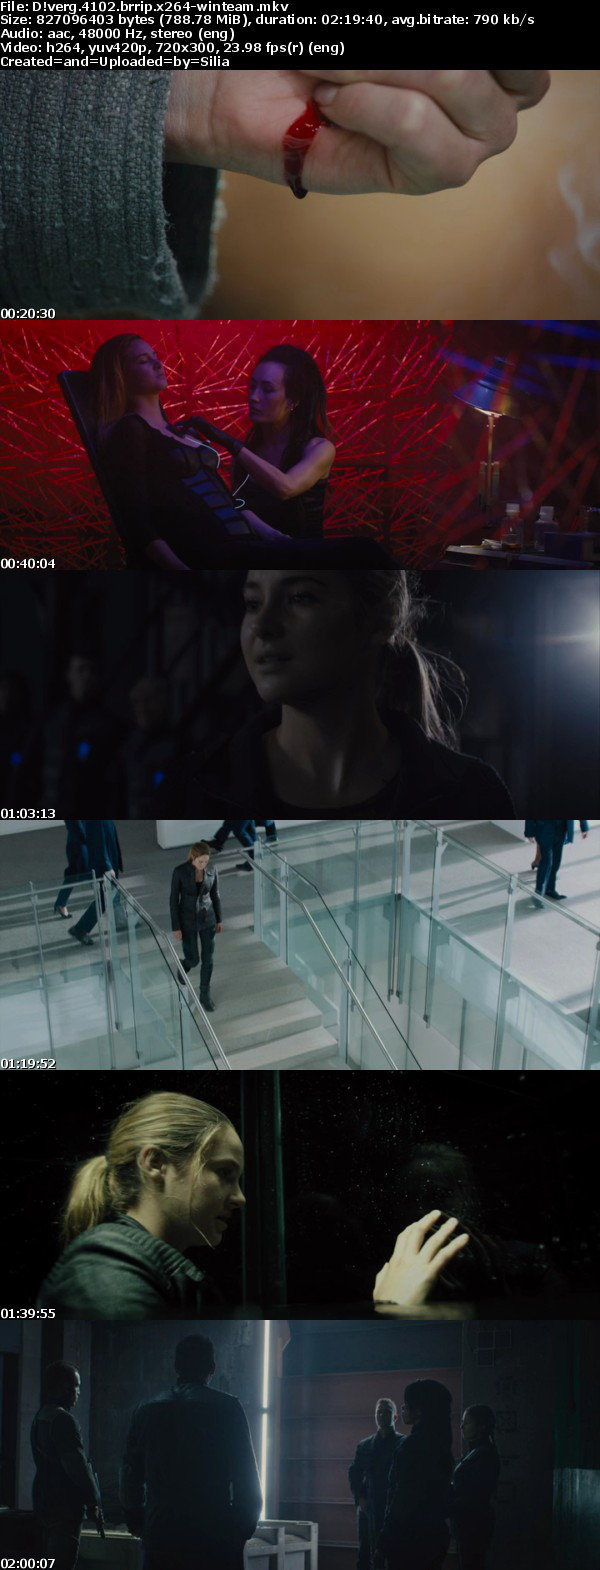 Divergent 2014 BRRip x264-WiNTeaM